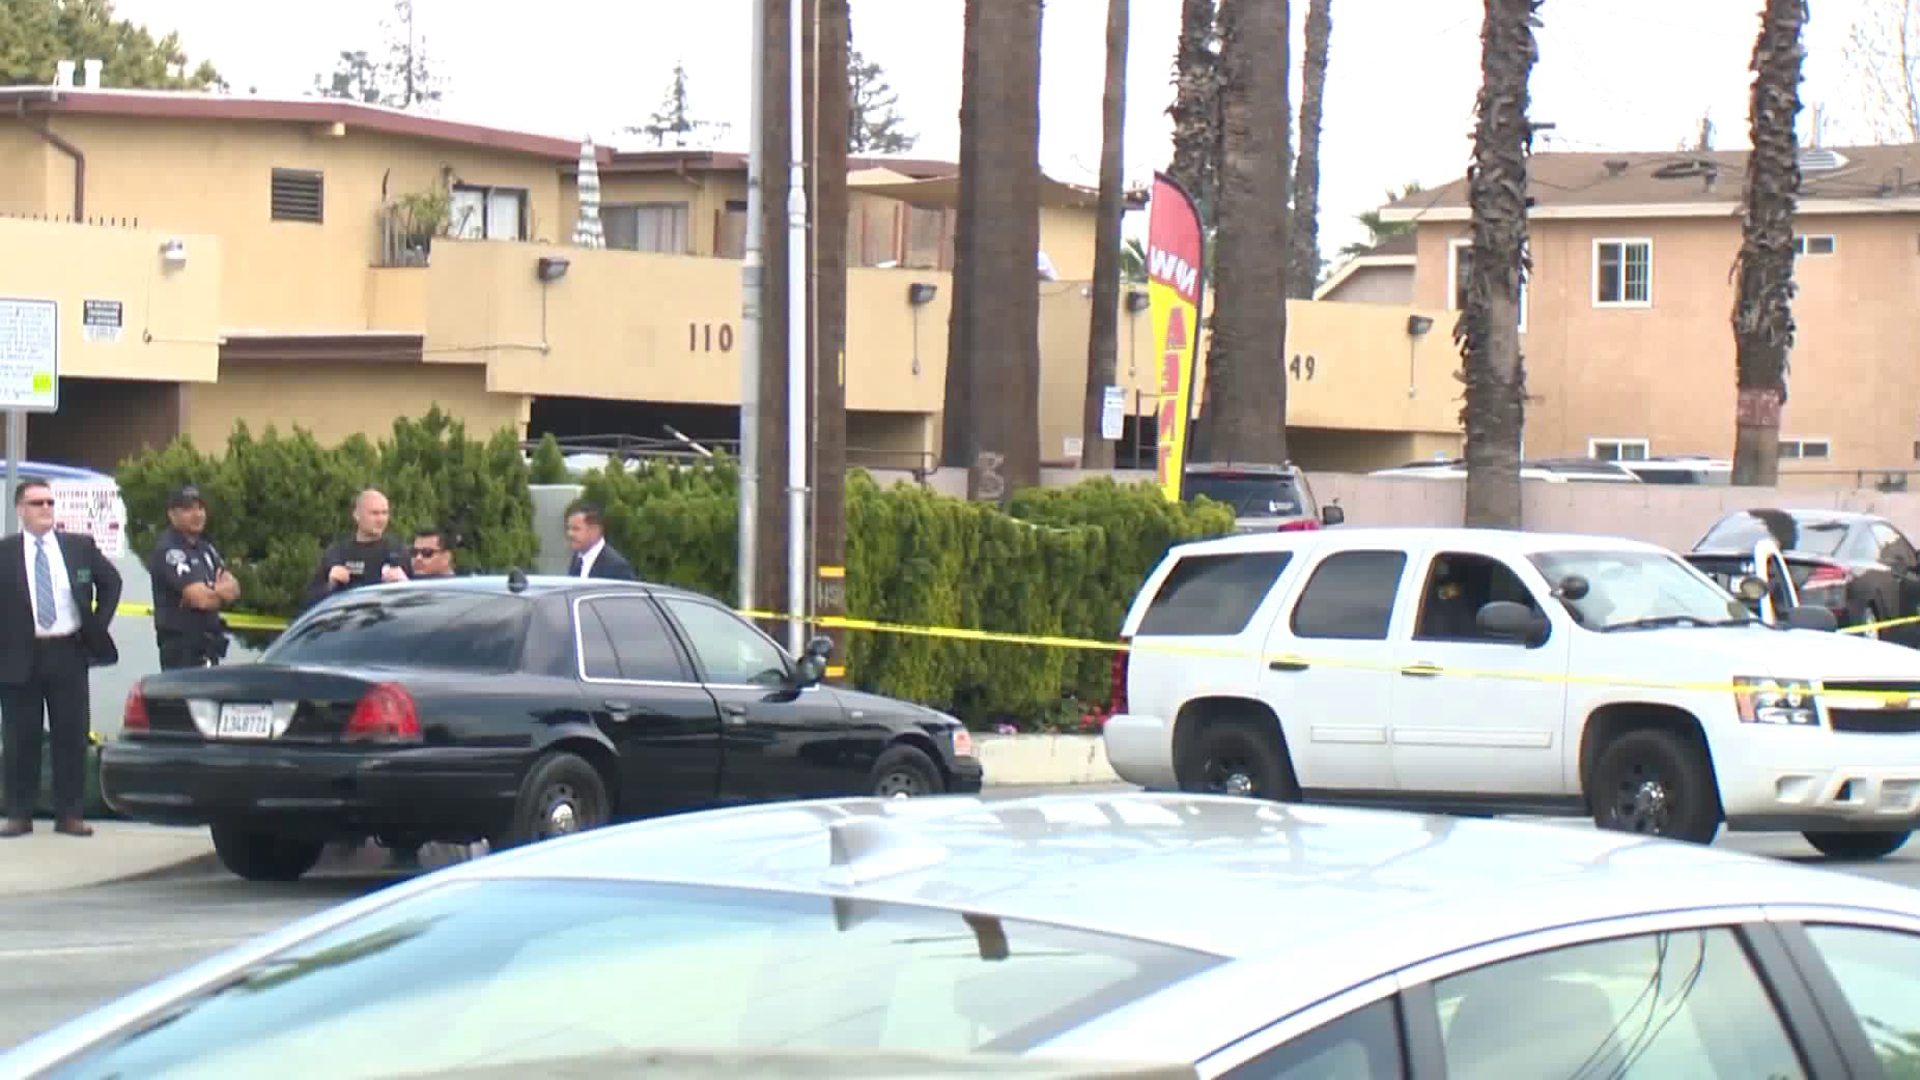 Authorities respond to investigate a deadly shooting in El Monte on March 6, 2020. (Credit: KTLA)